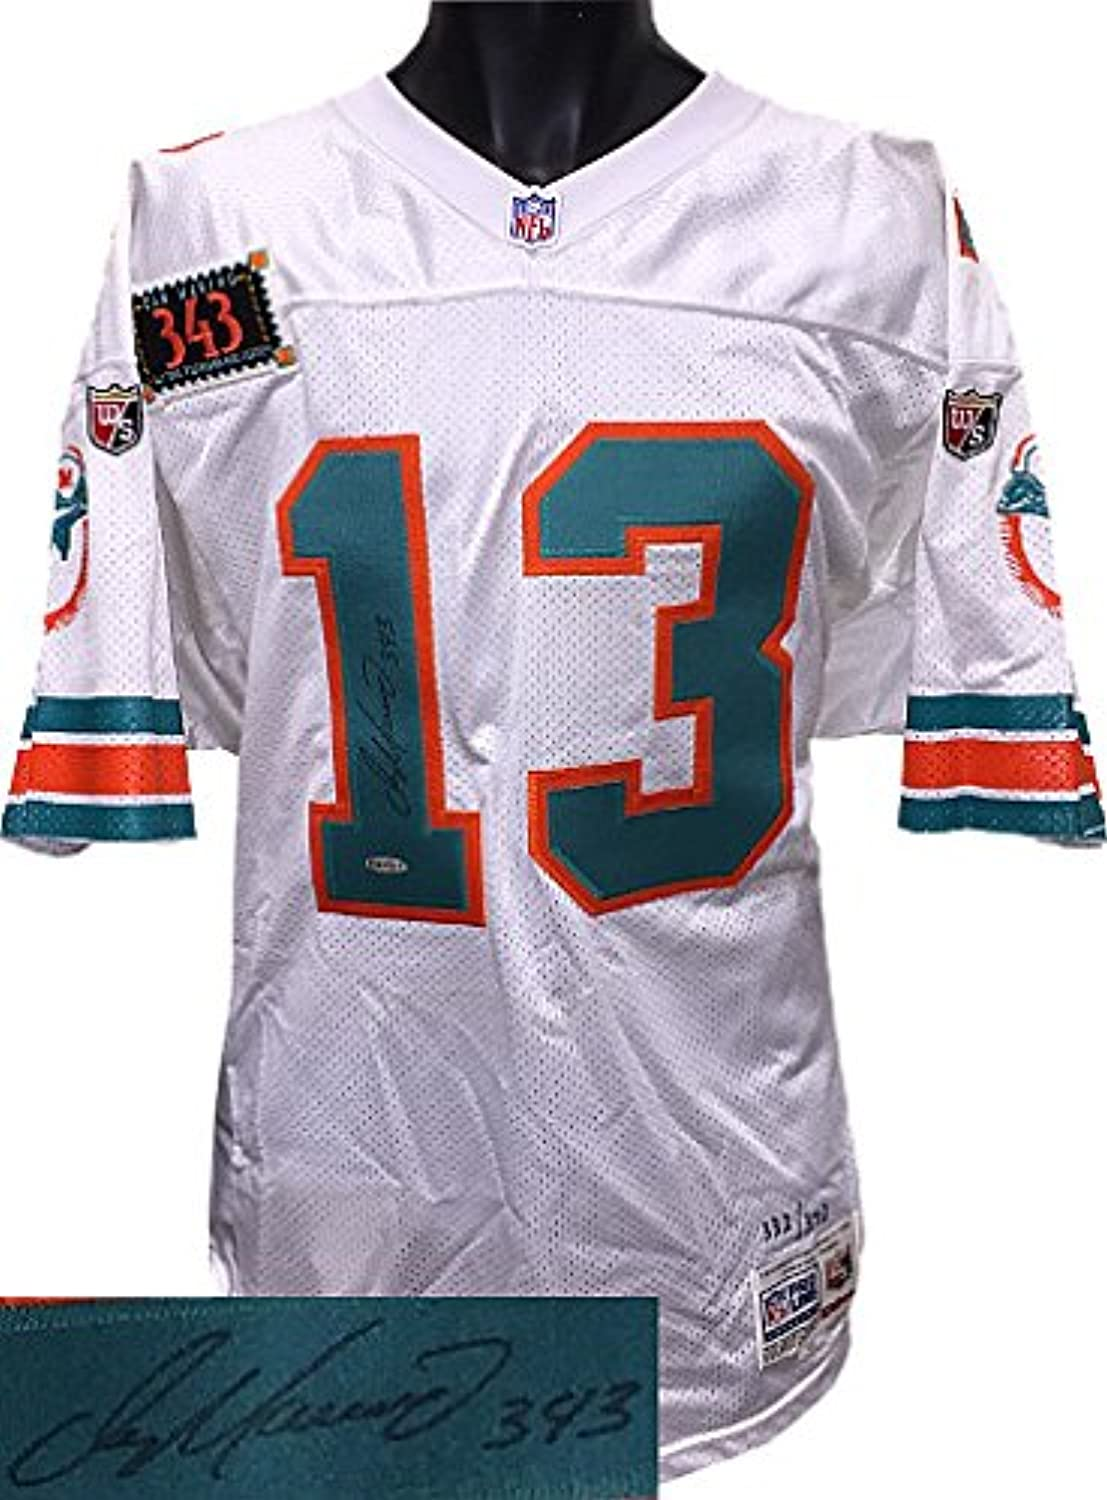 Dan Marino signed Miami Dolphins Wilson White TB NFL Authentic On Field Jersey w  343 Patch  332 Upper Deck Hologram